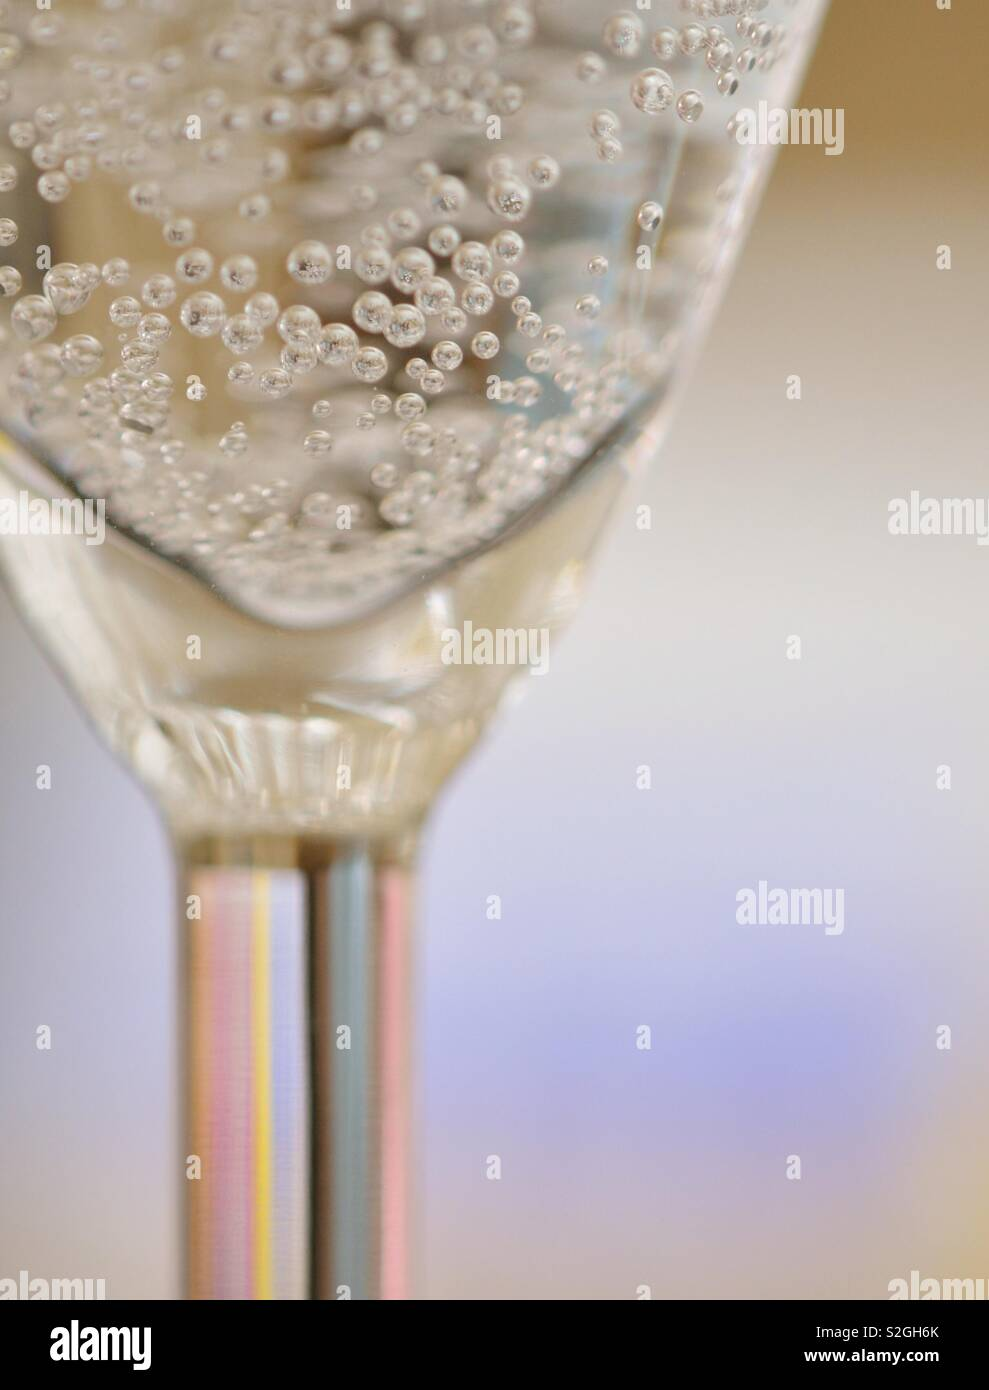 Bubbly - Stock Image